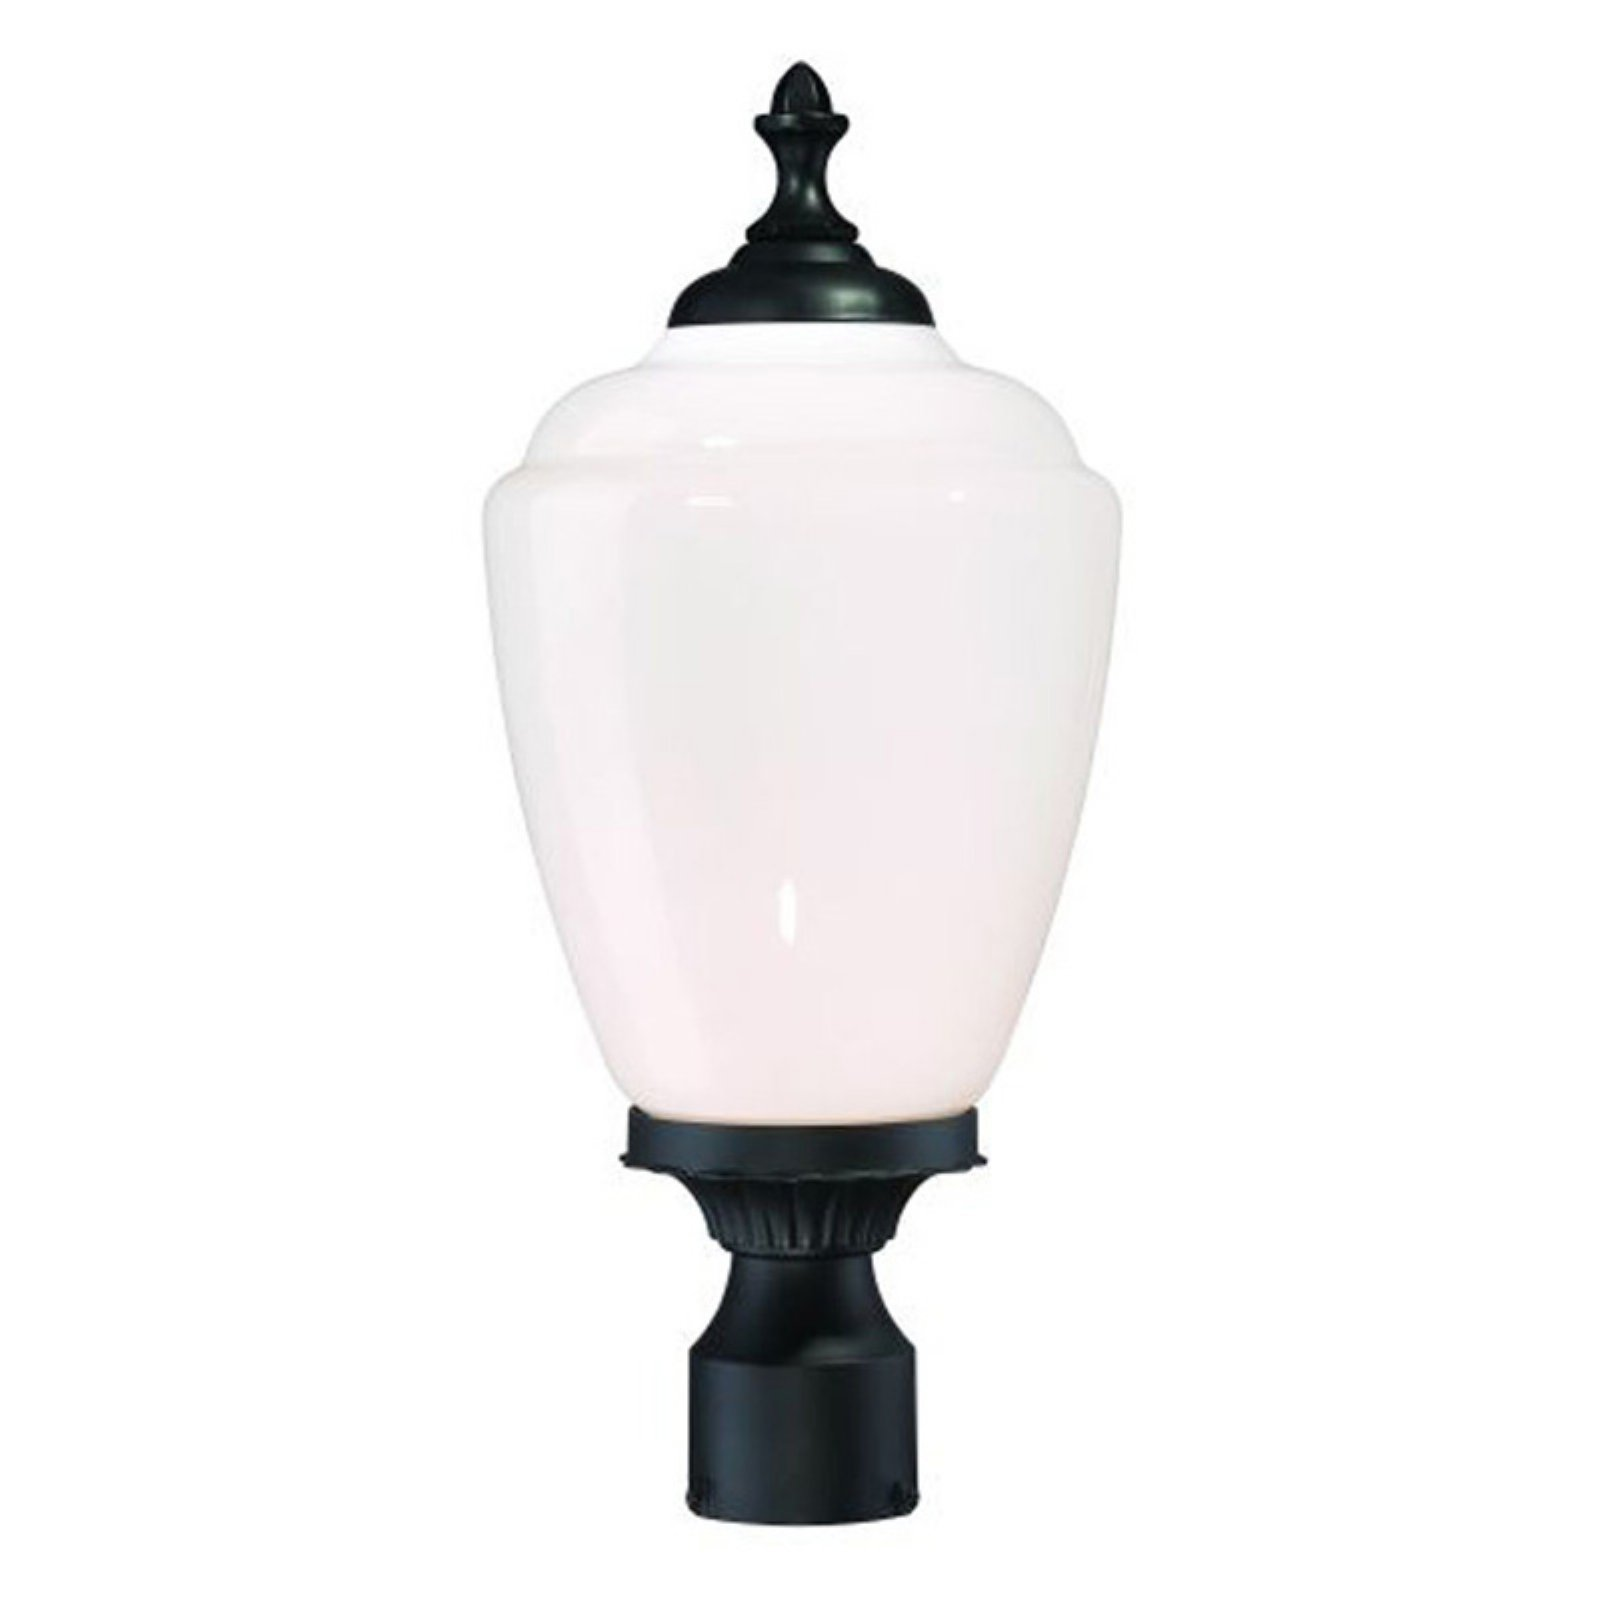 Image of Acclaim Lighting Acorn Outdoor Post Mount Light Fixture